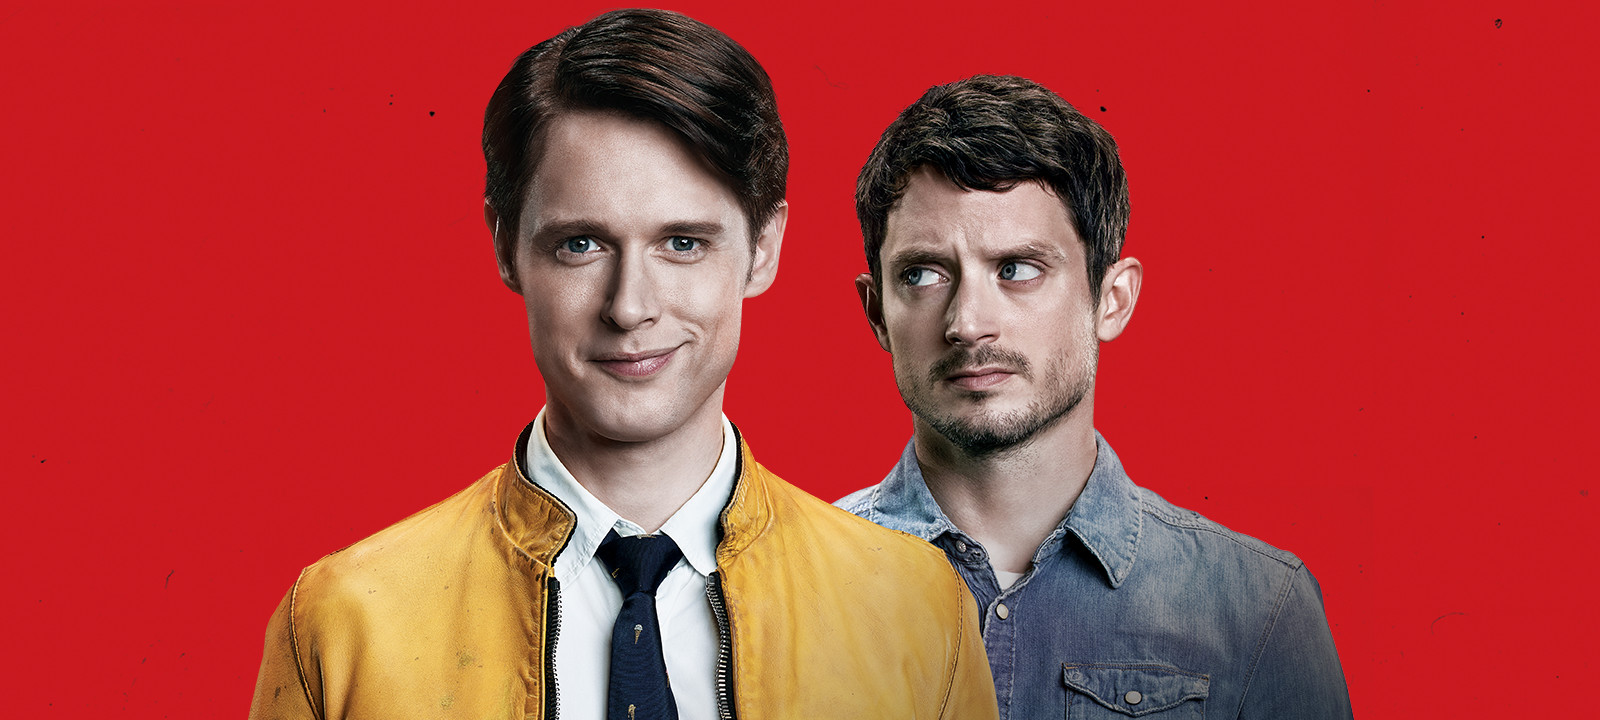 Dirk-Gently-BBC-S1-key-art-800×600